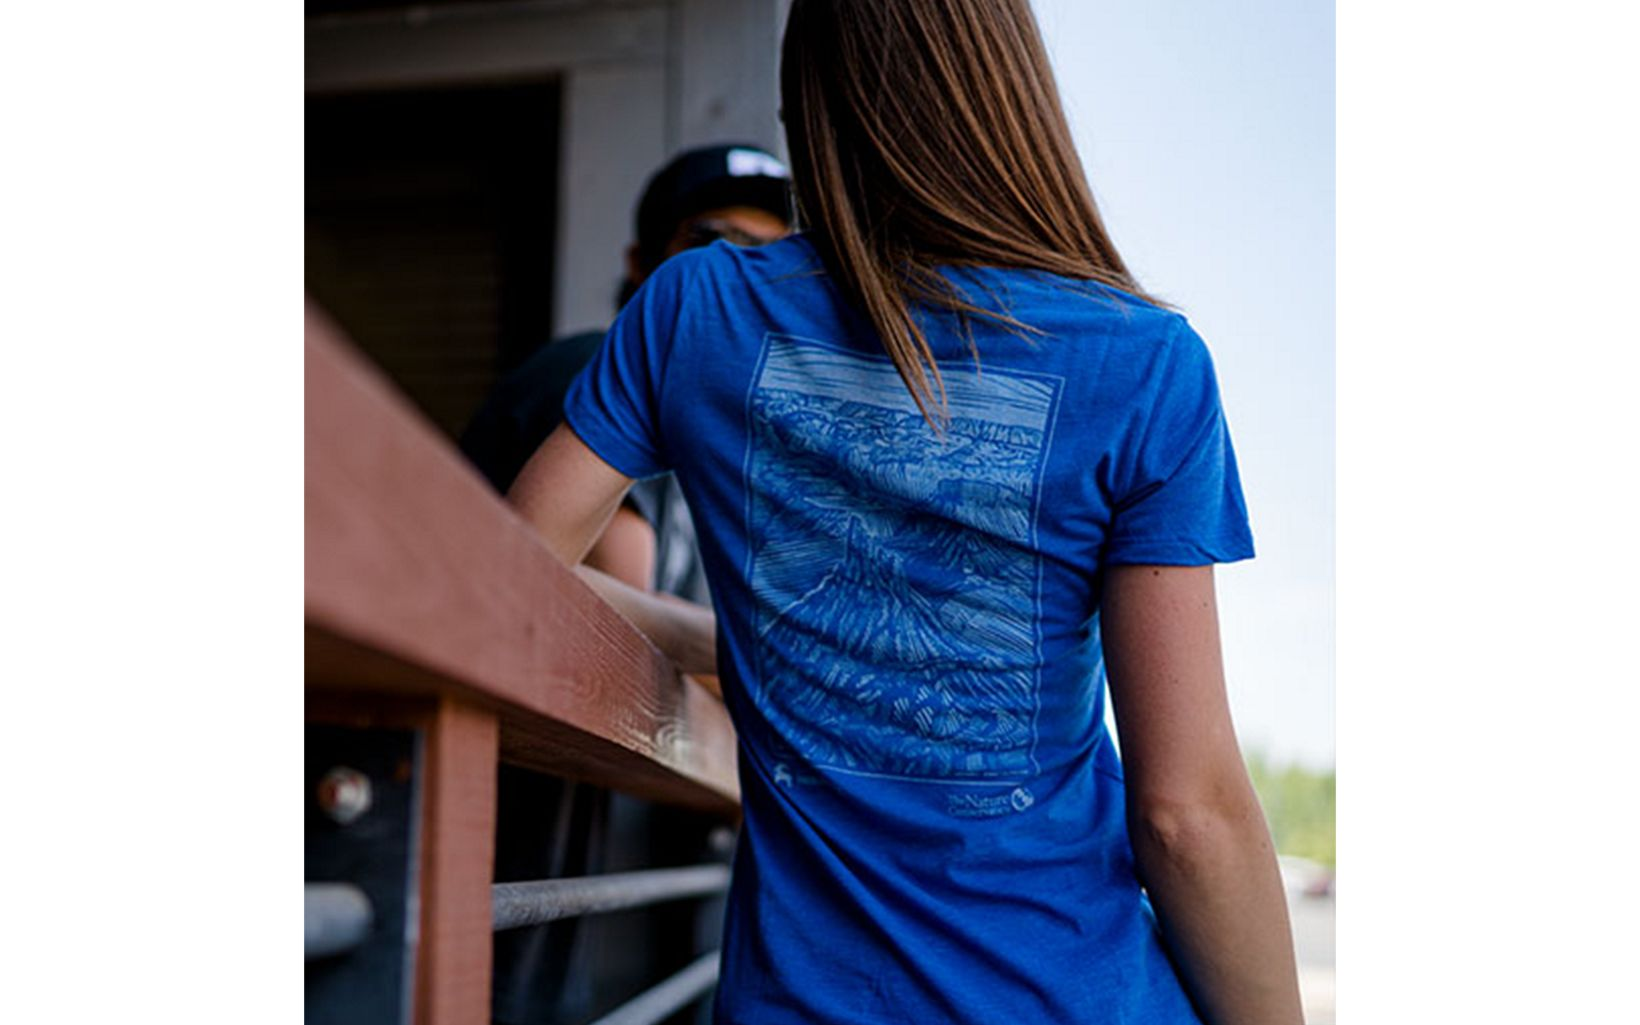 Backcountry donated $20 of every sale of this tee shirt to The Nature Conservancy for its work at the Canyonlands Research Center.